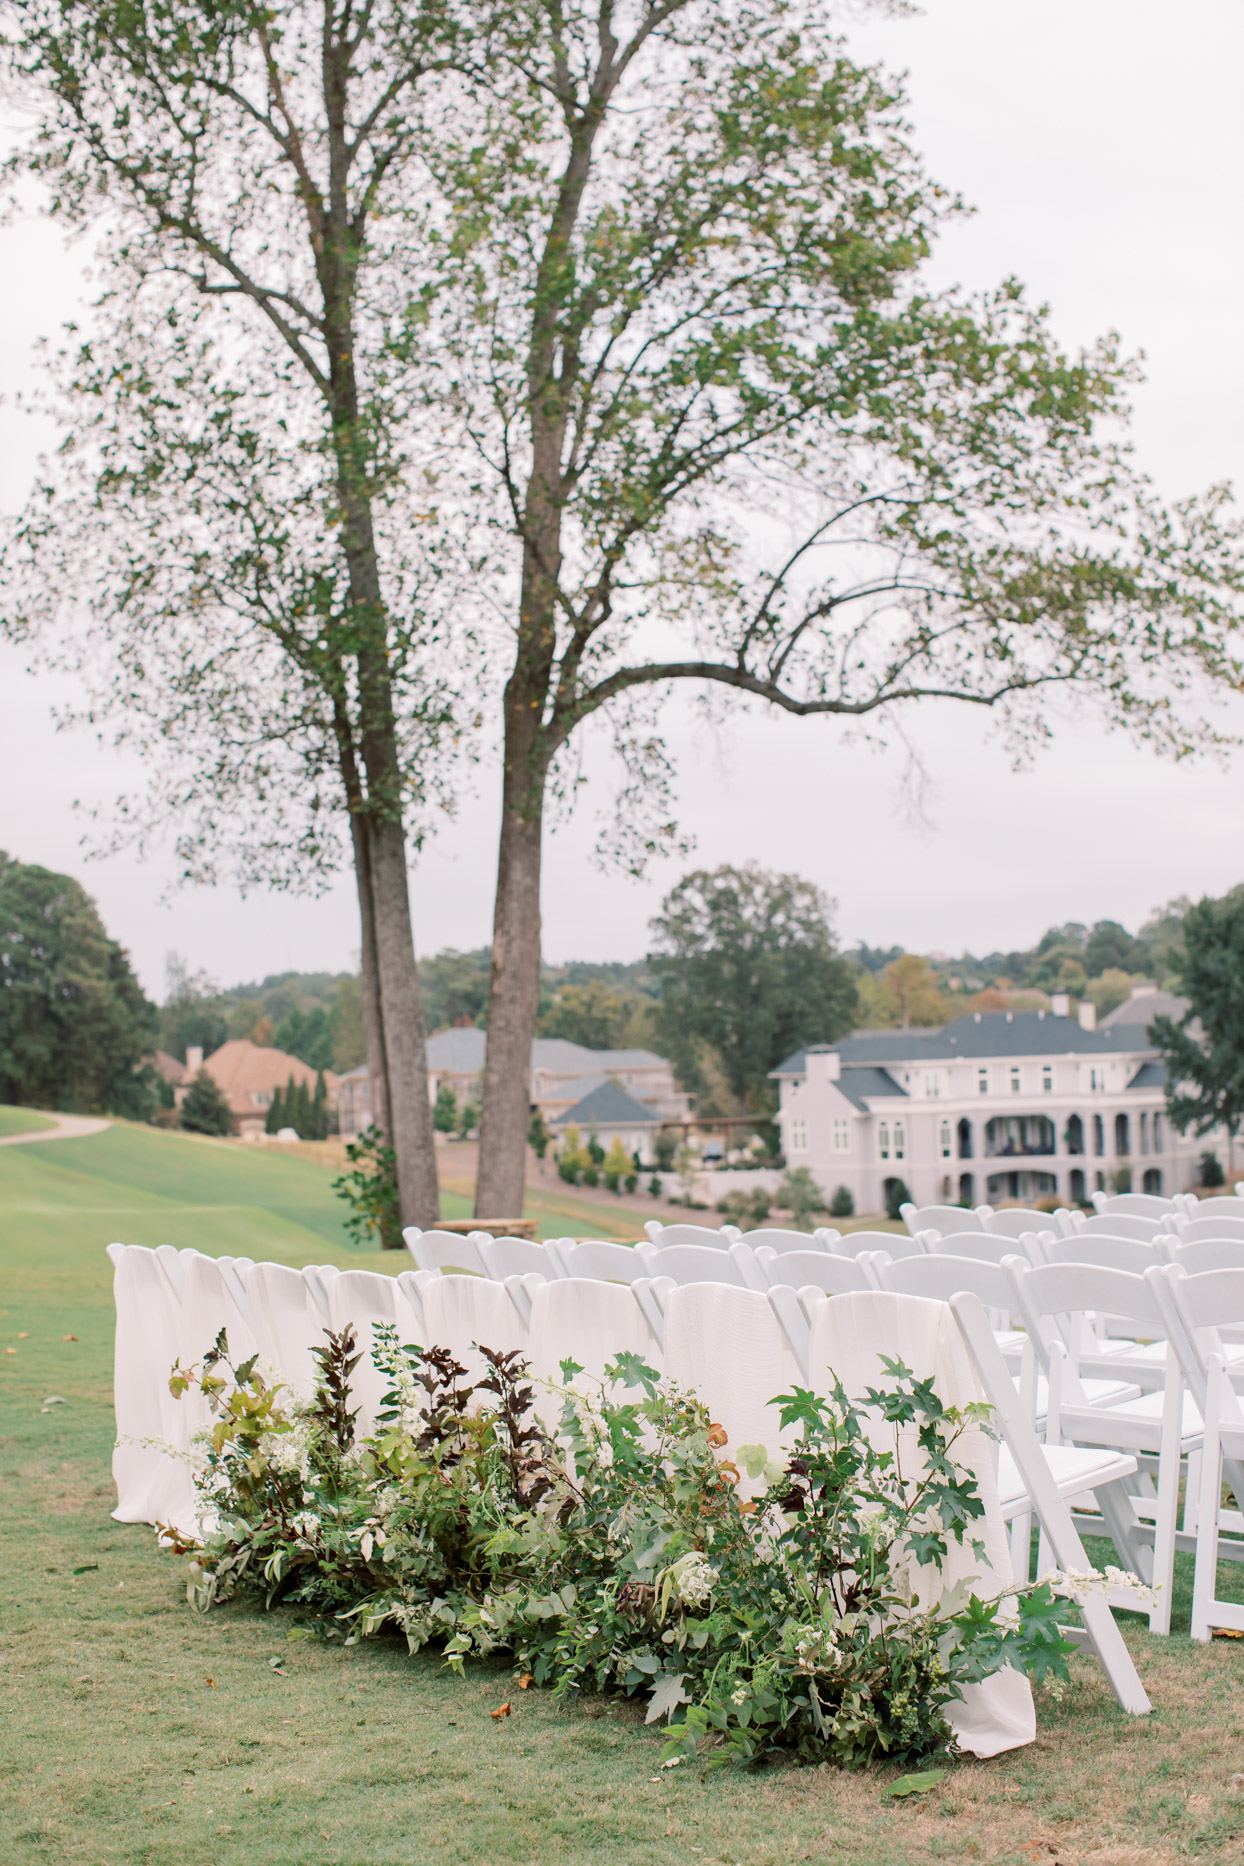 white wedding ceremony chairs set up on lawn overlooking houses